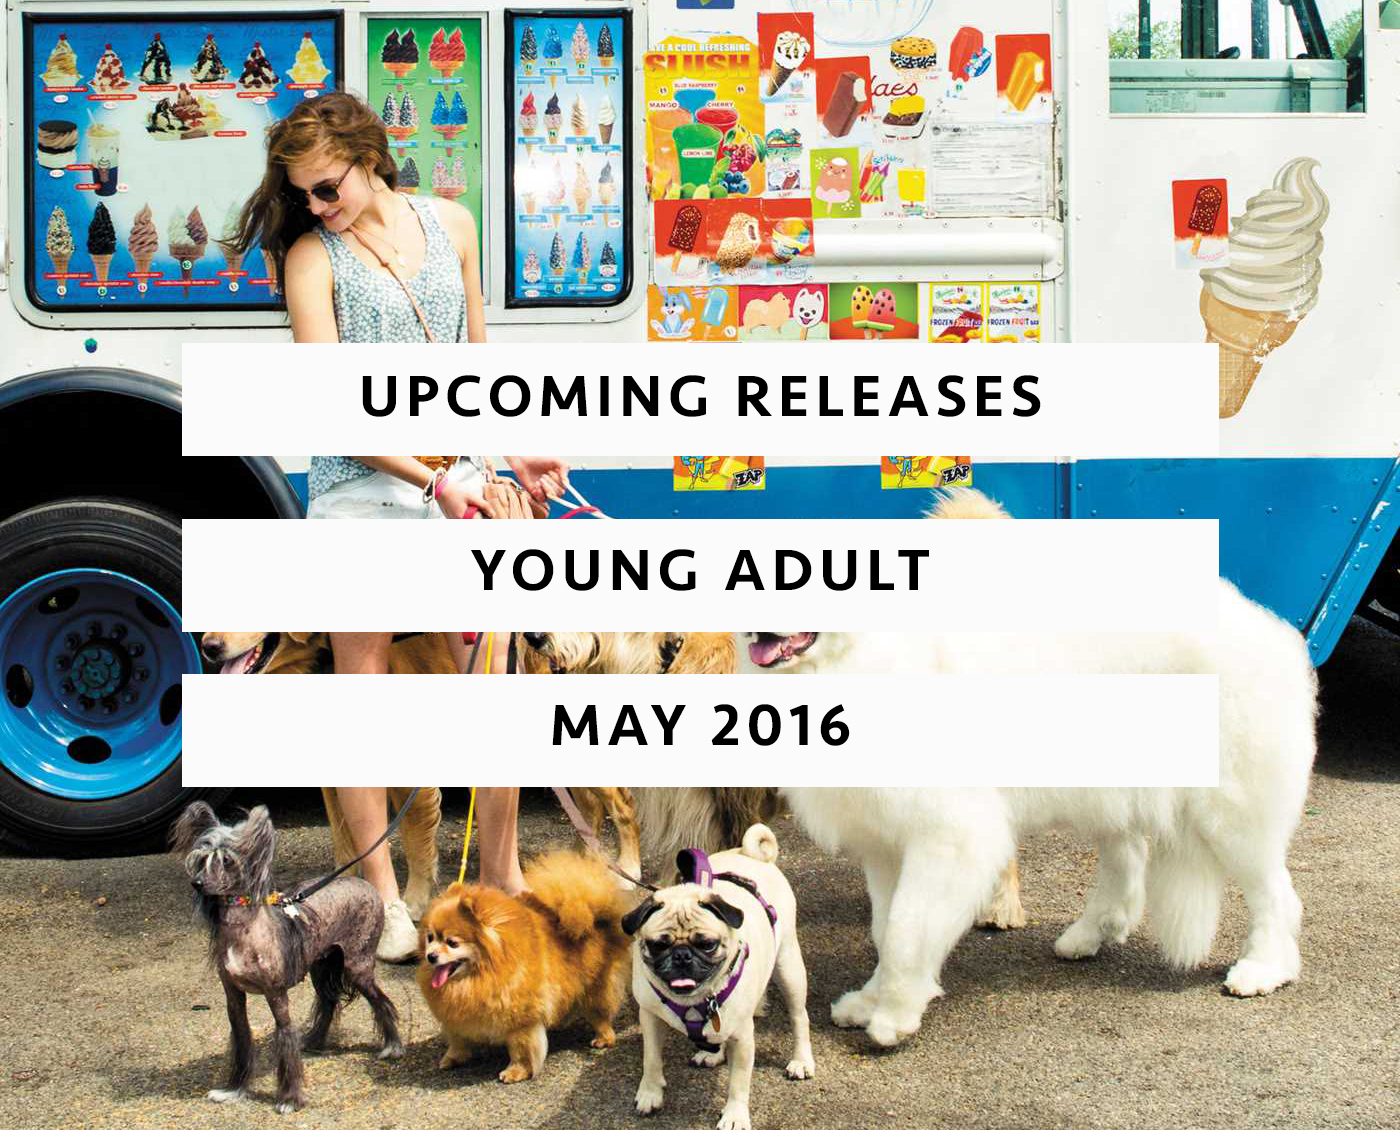 upcoming releases may 2016